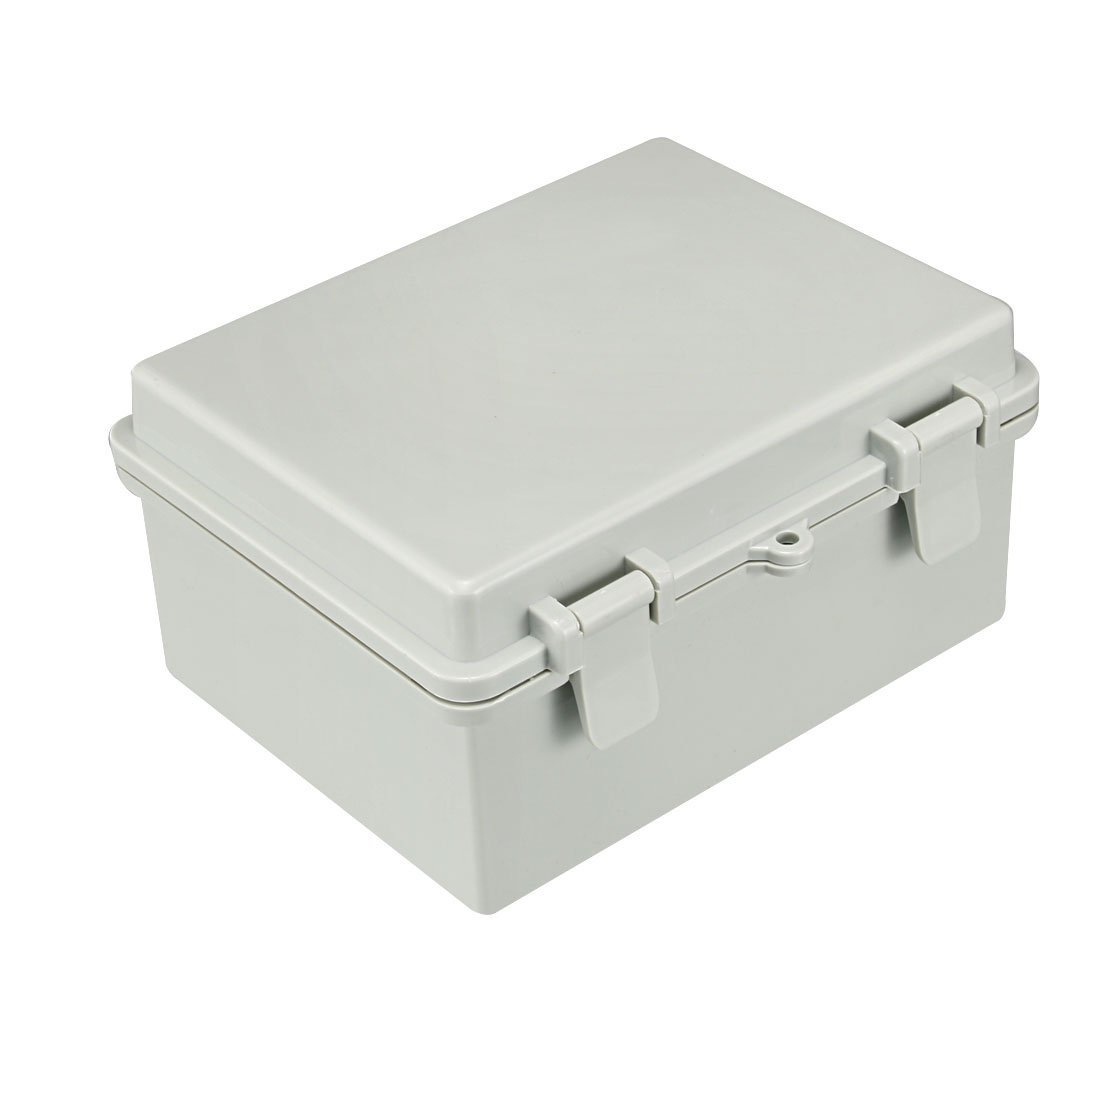 uxcell 223 x 173 x 110mm Electronic Plastic DIY Junction Box Enclosure Case Gray